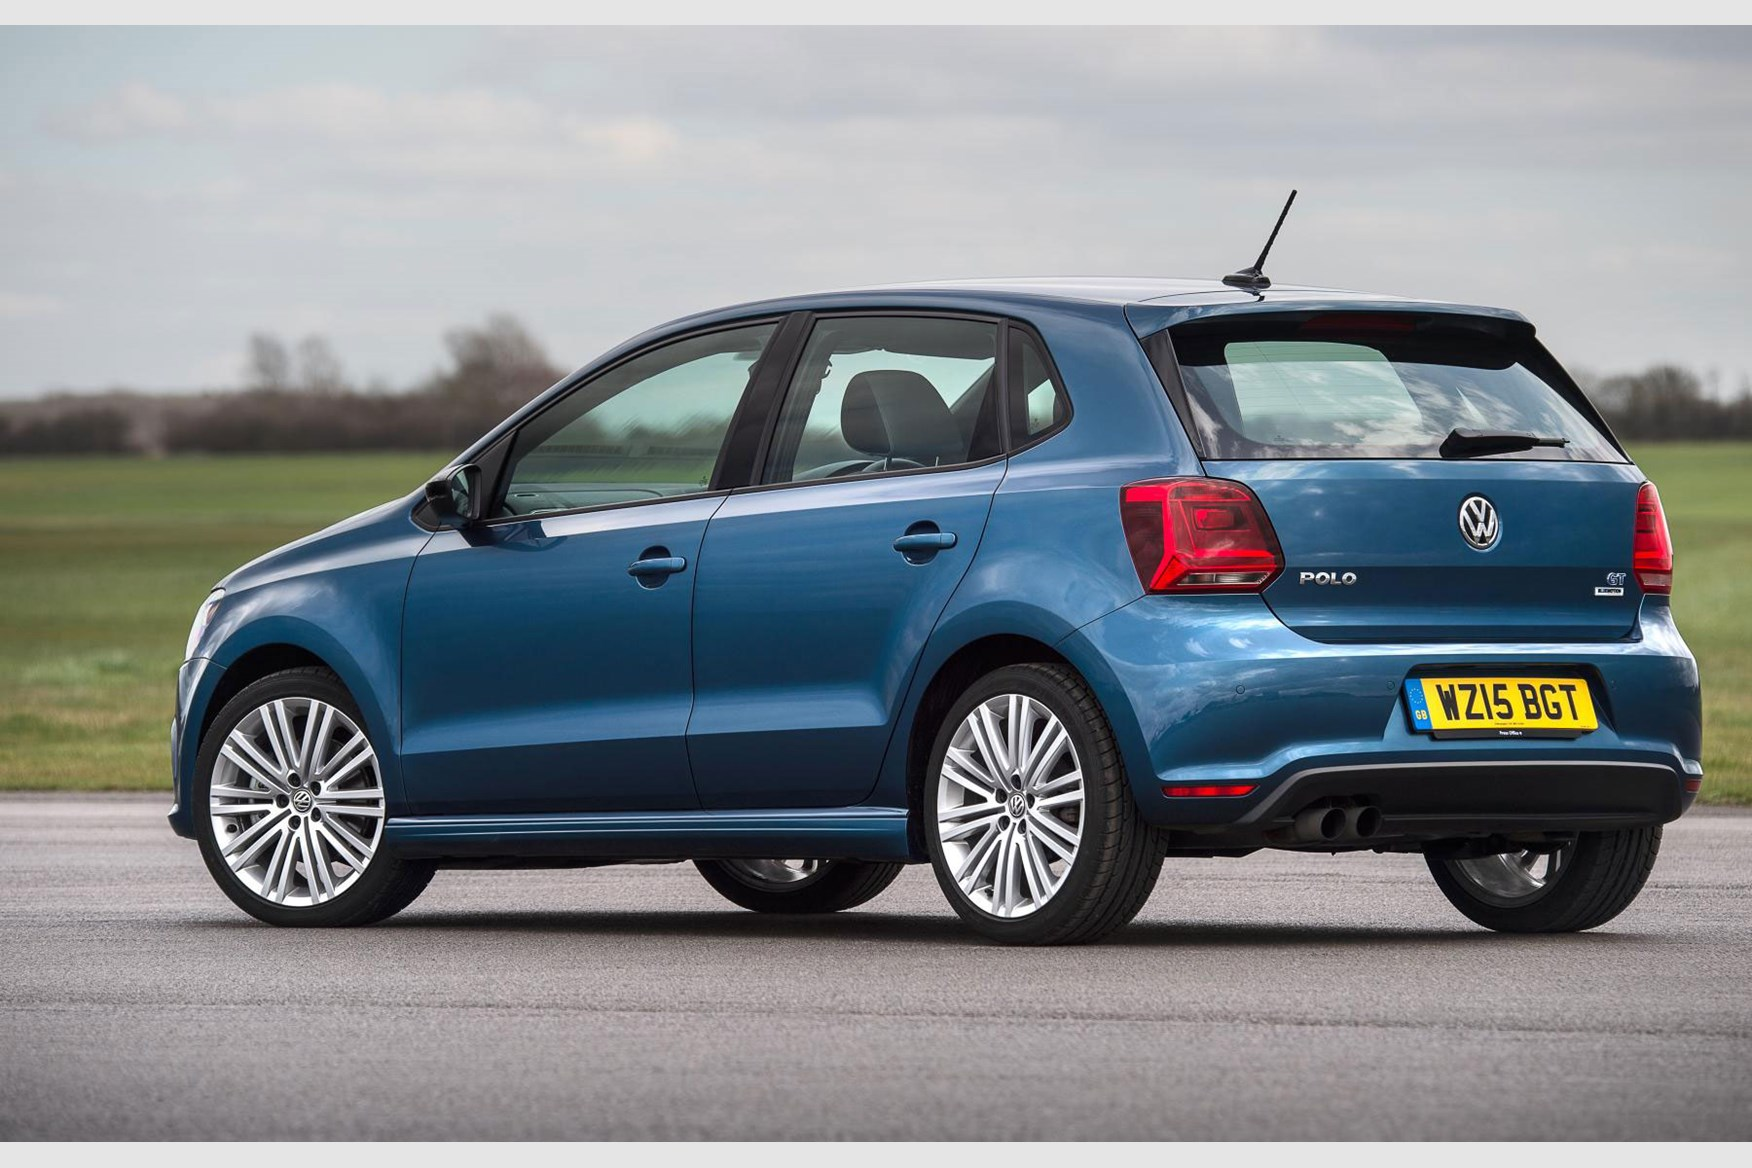 vw polo 2018 in pictures by car magazine vw golf gti manual review vw golf gti manual 2017